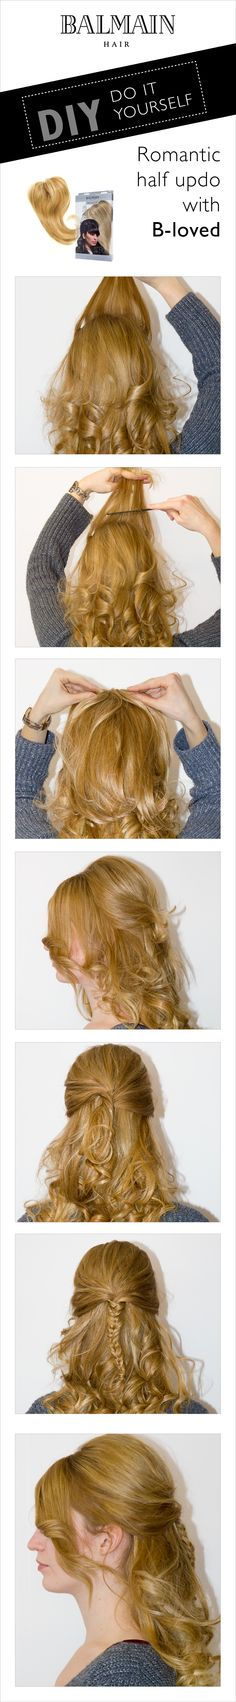 The 17 Best Step By Steps Images On Pinterest Balmain Hair